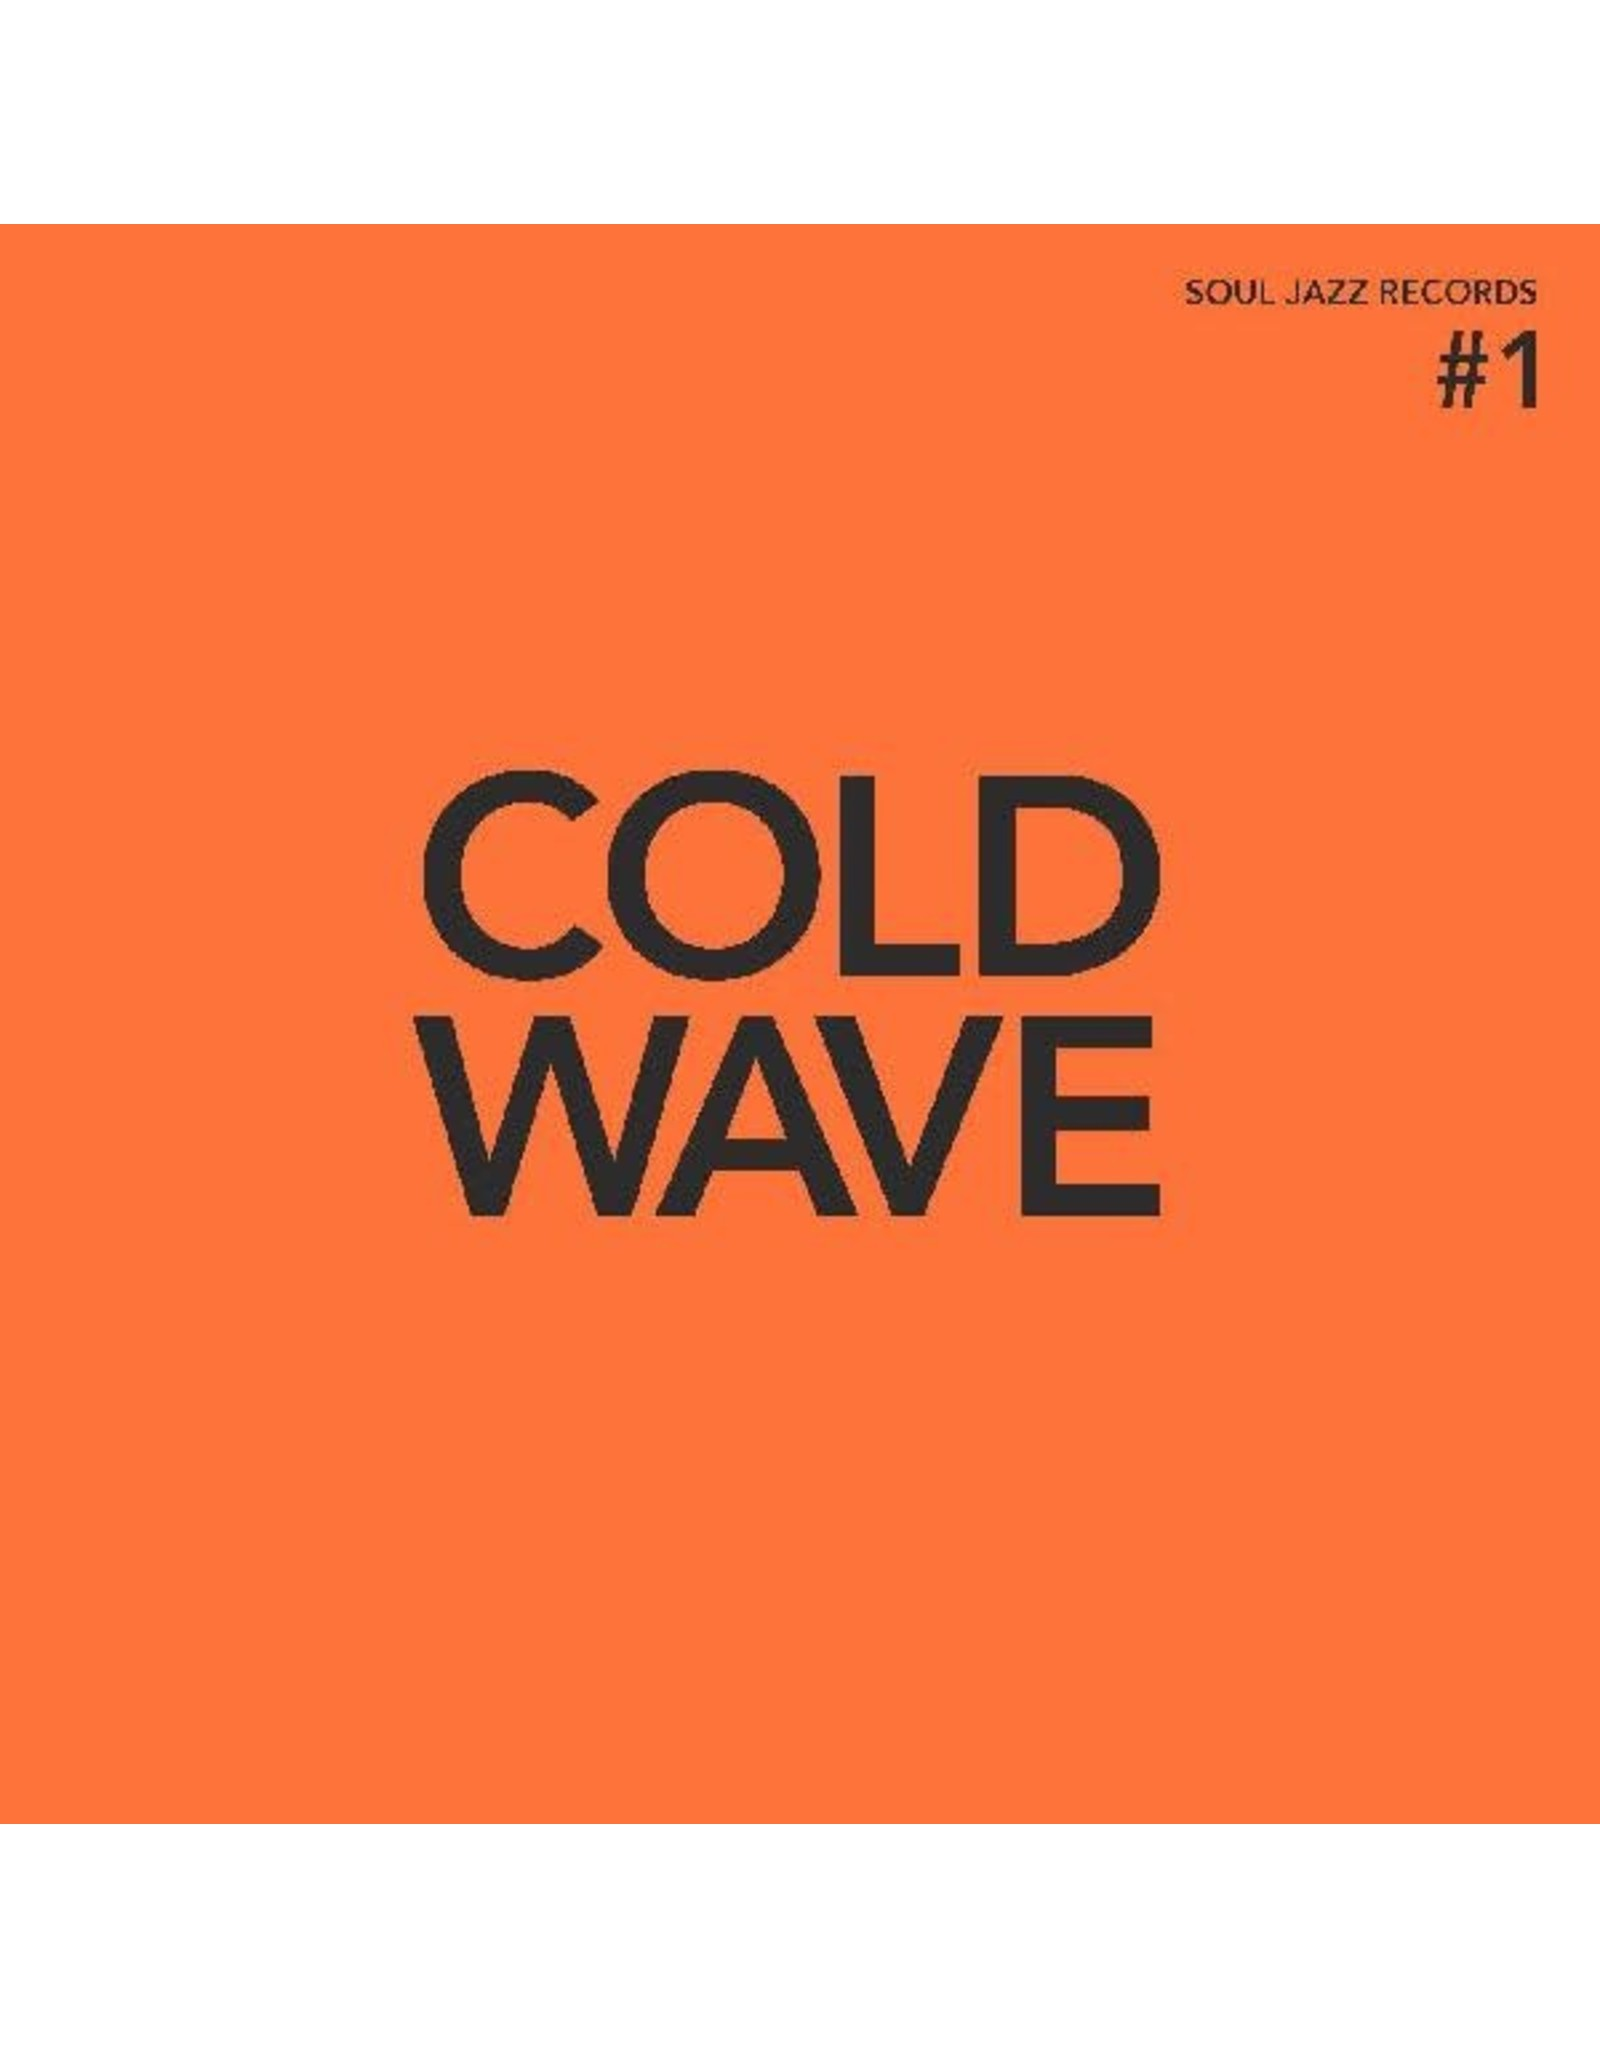 New Vinyl Various - Soul Jazz Records Presents: COLD WAVE #1 (Deluxe, Colored) 2LP